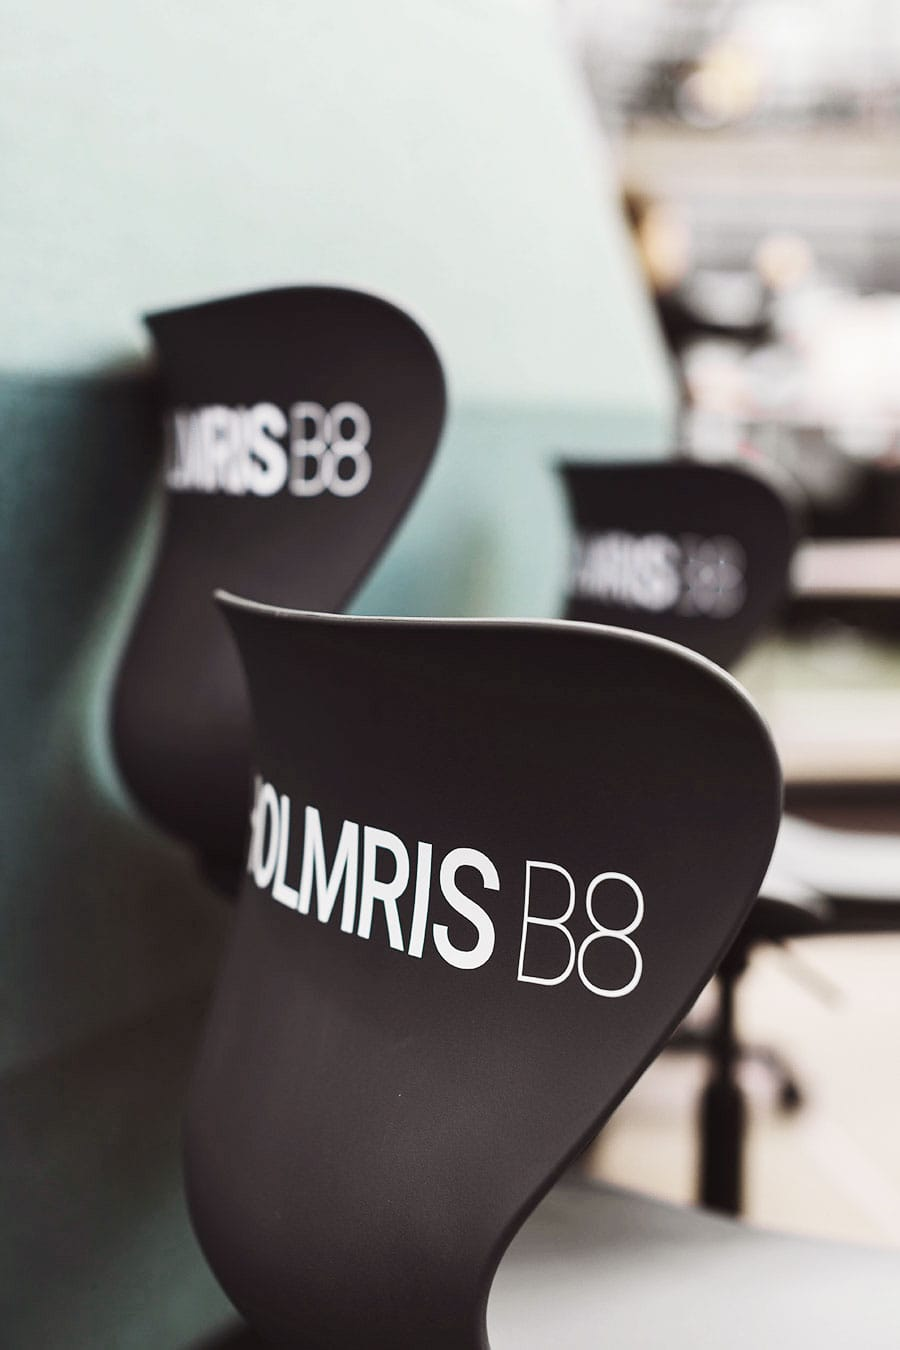 Holmris B8 Viper chair